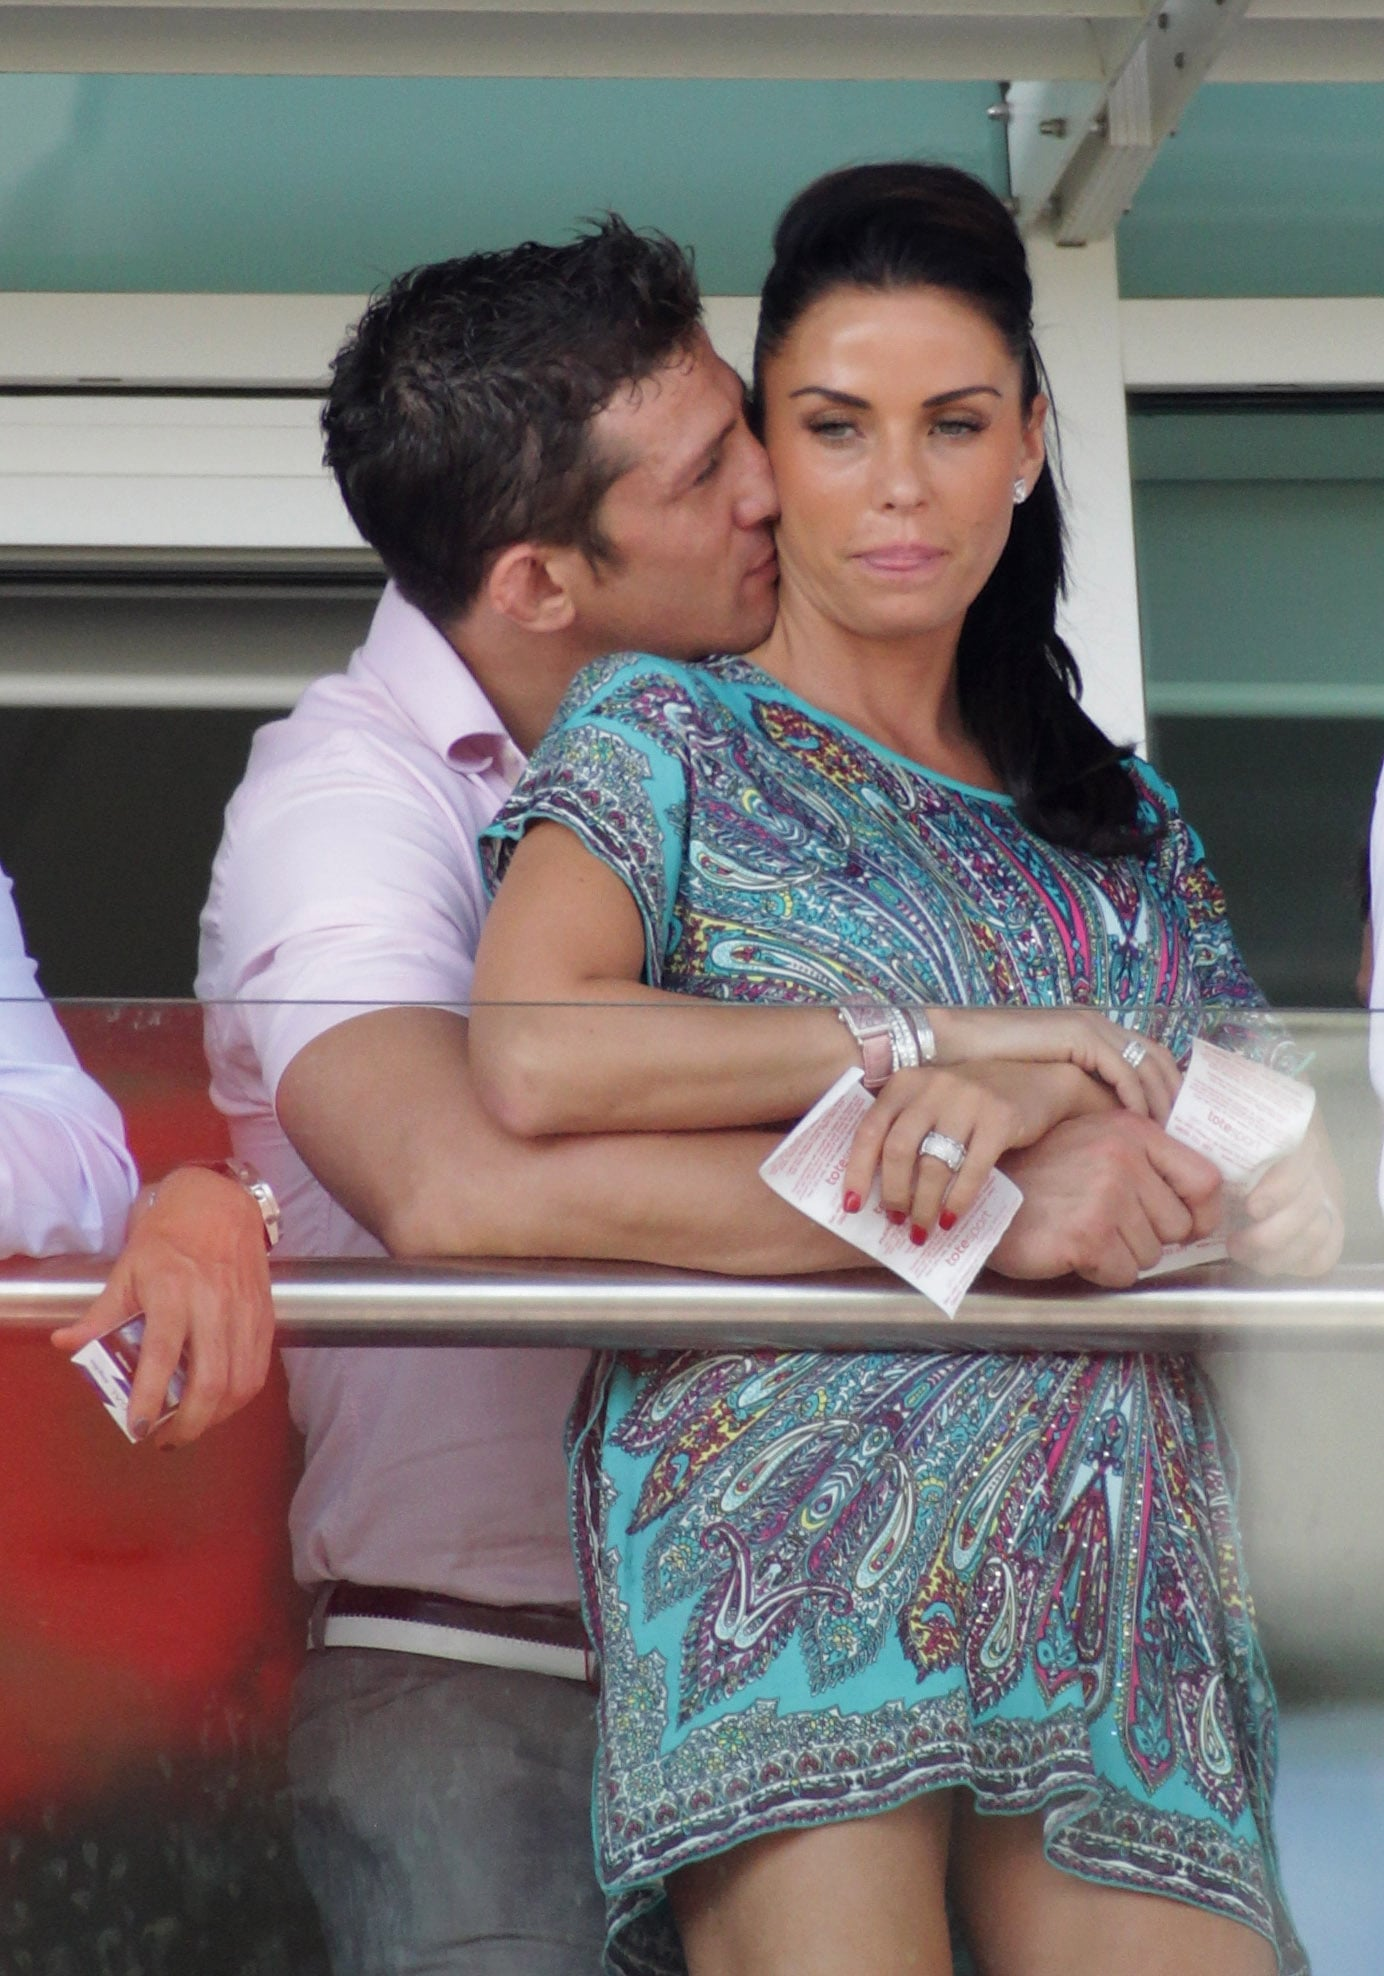 Pictures Of Katie Price And Alex Reid Kissing At Ladies